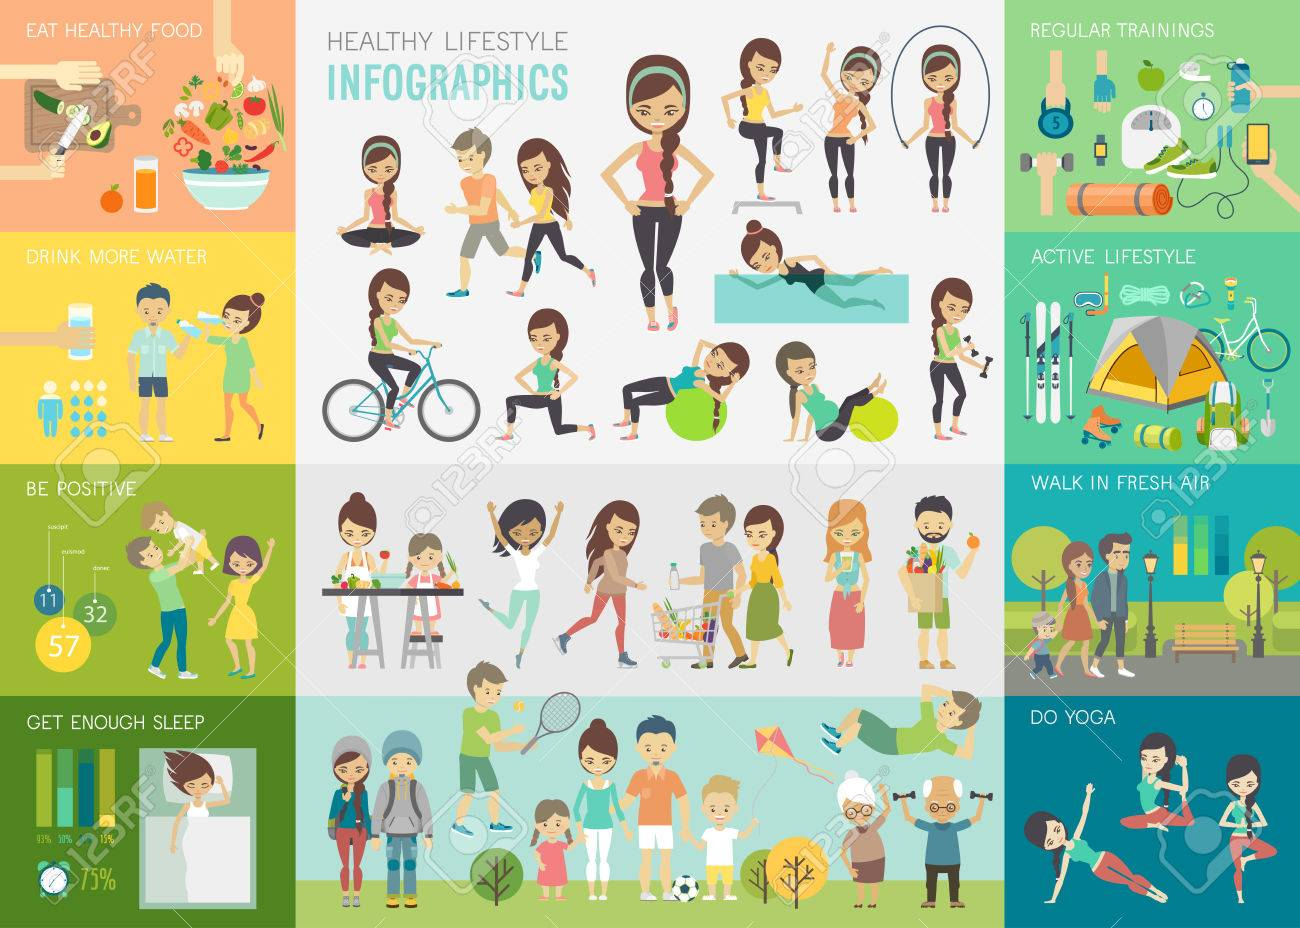 Healthy lifestyle infographic set with charts and other elements.Vector illustration. - 80194364